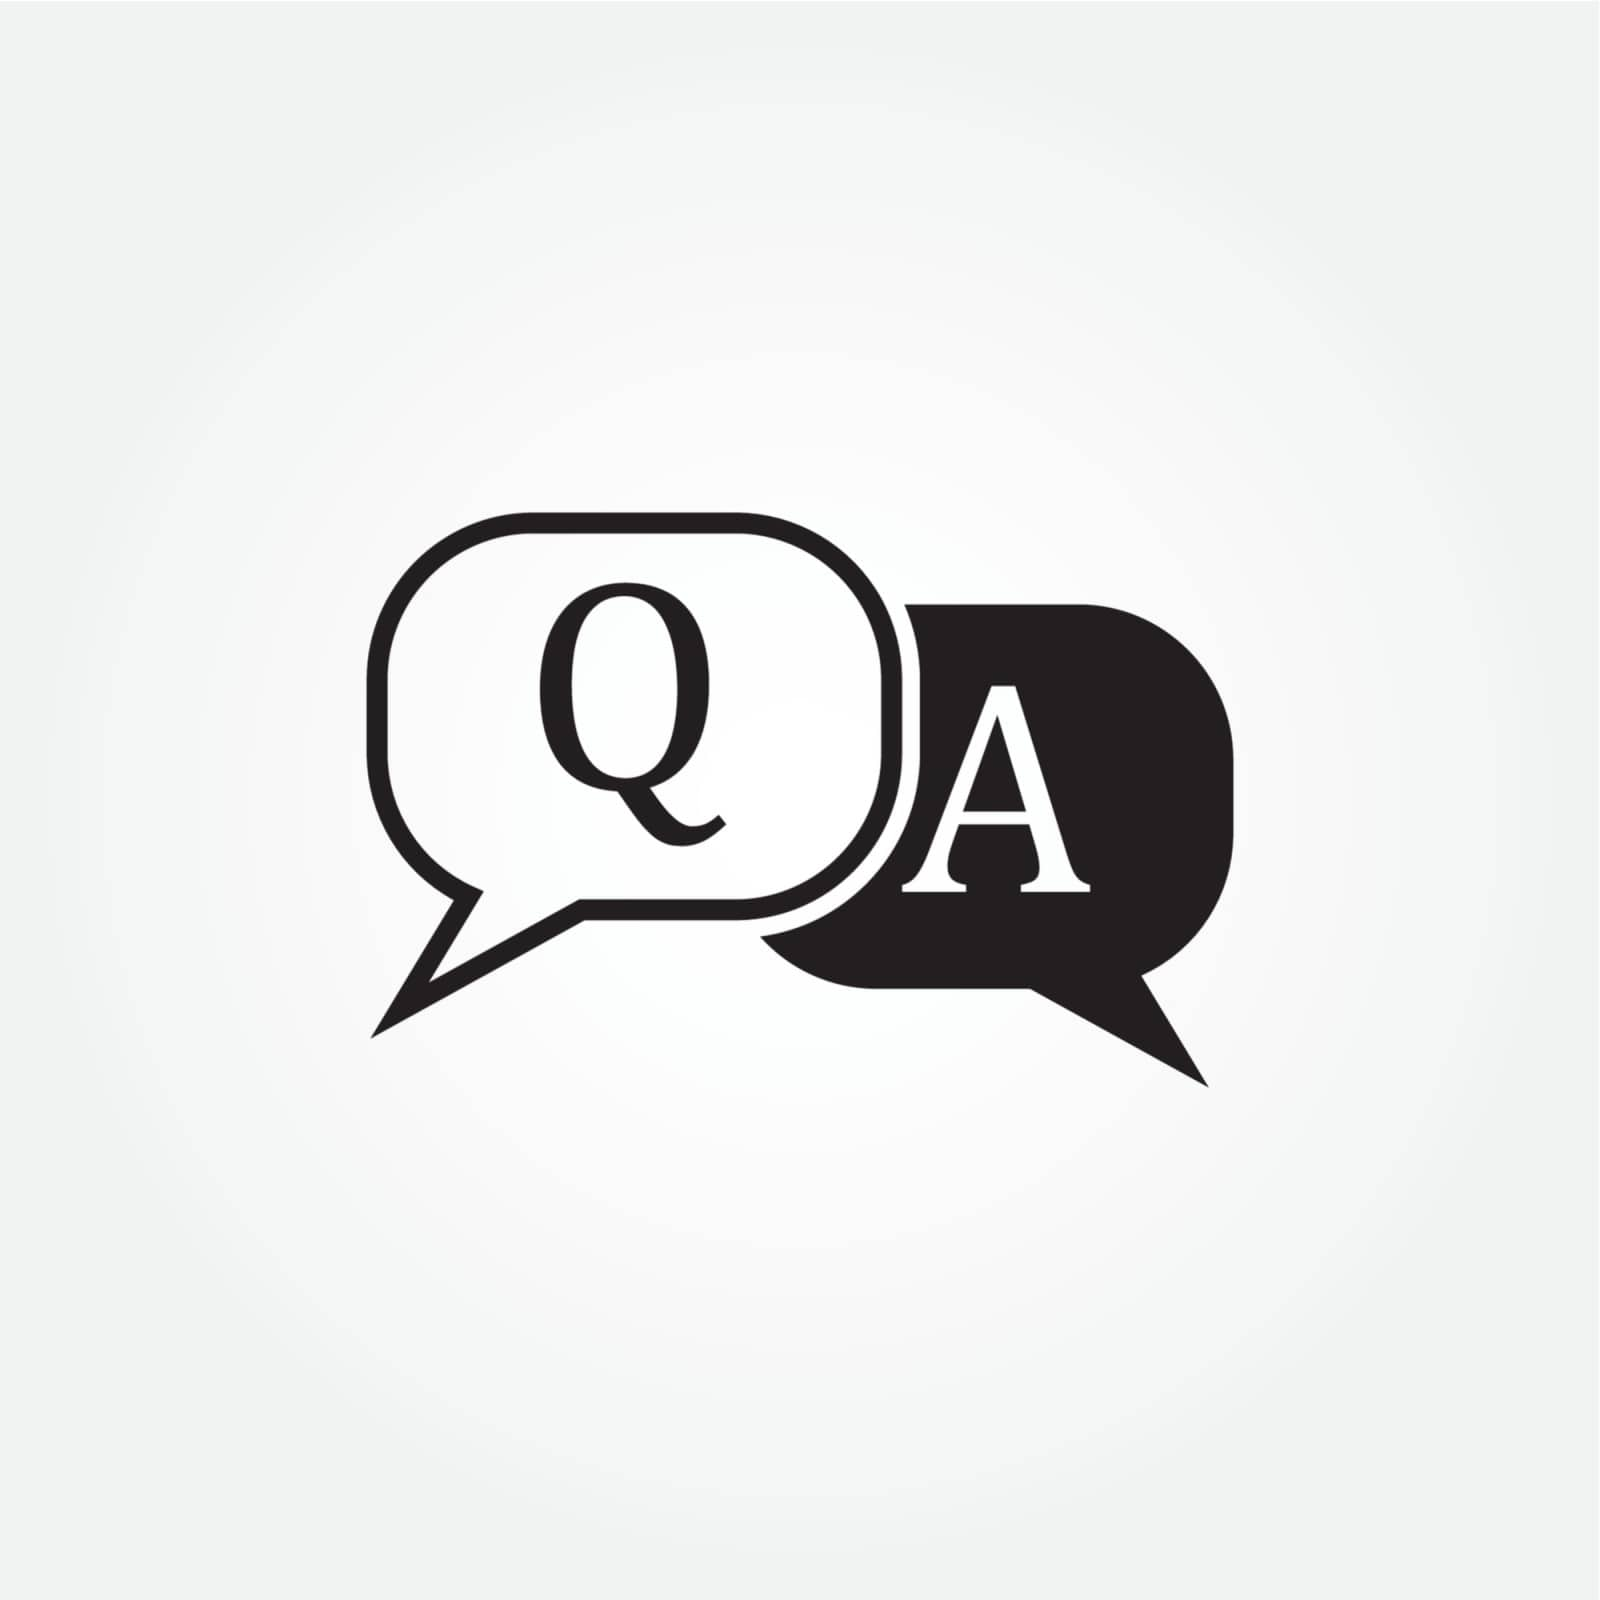 question answer icon design vector illustration